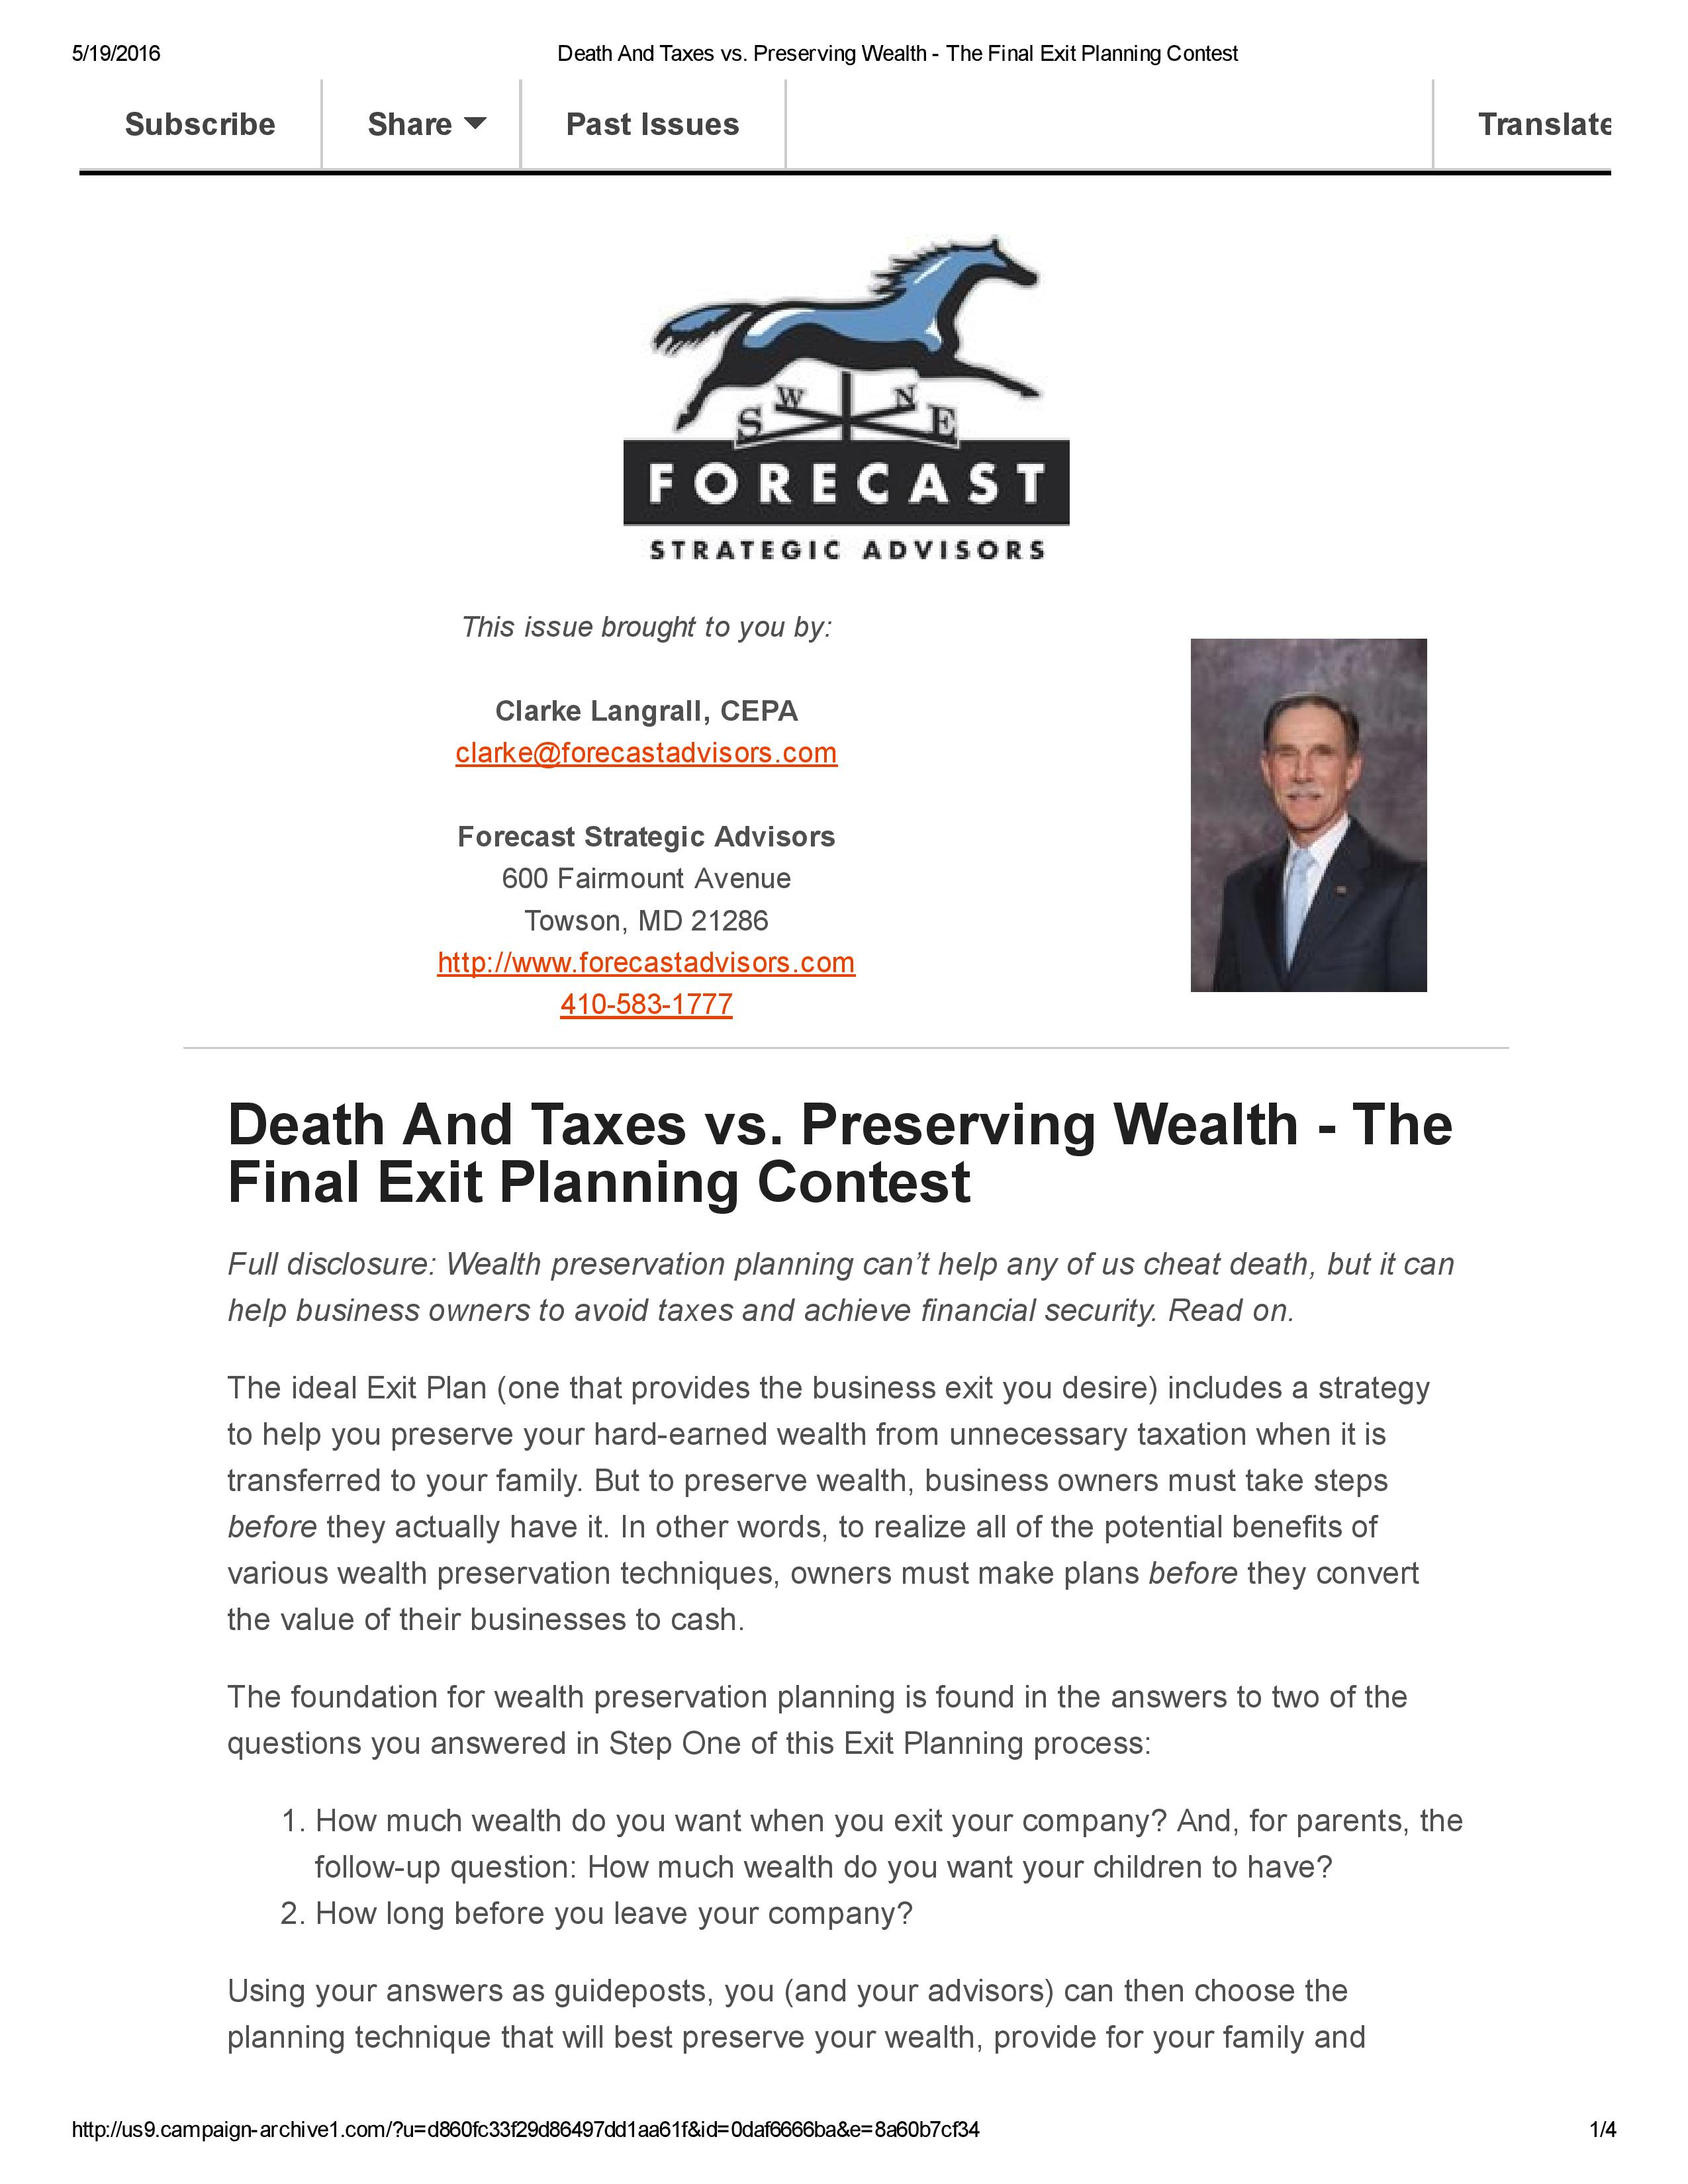 Death And Taxes vs. Preserving Wealth - The Final Exit Planning Contest-page-001